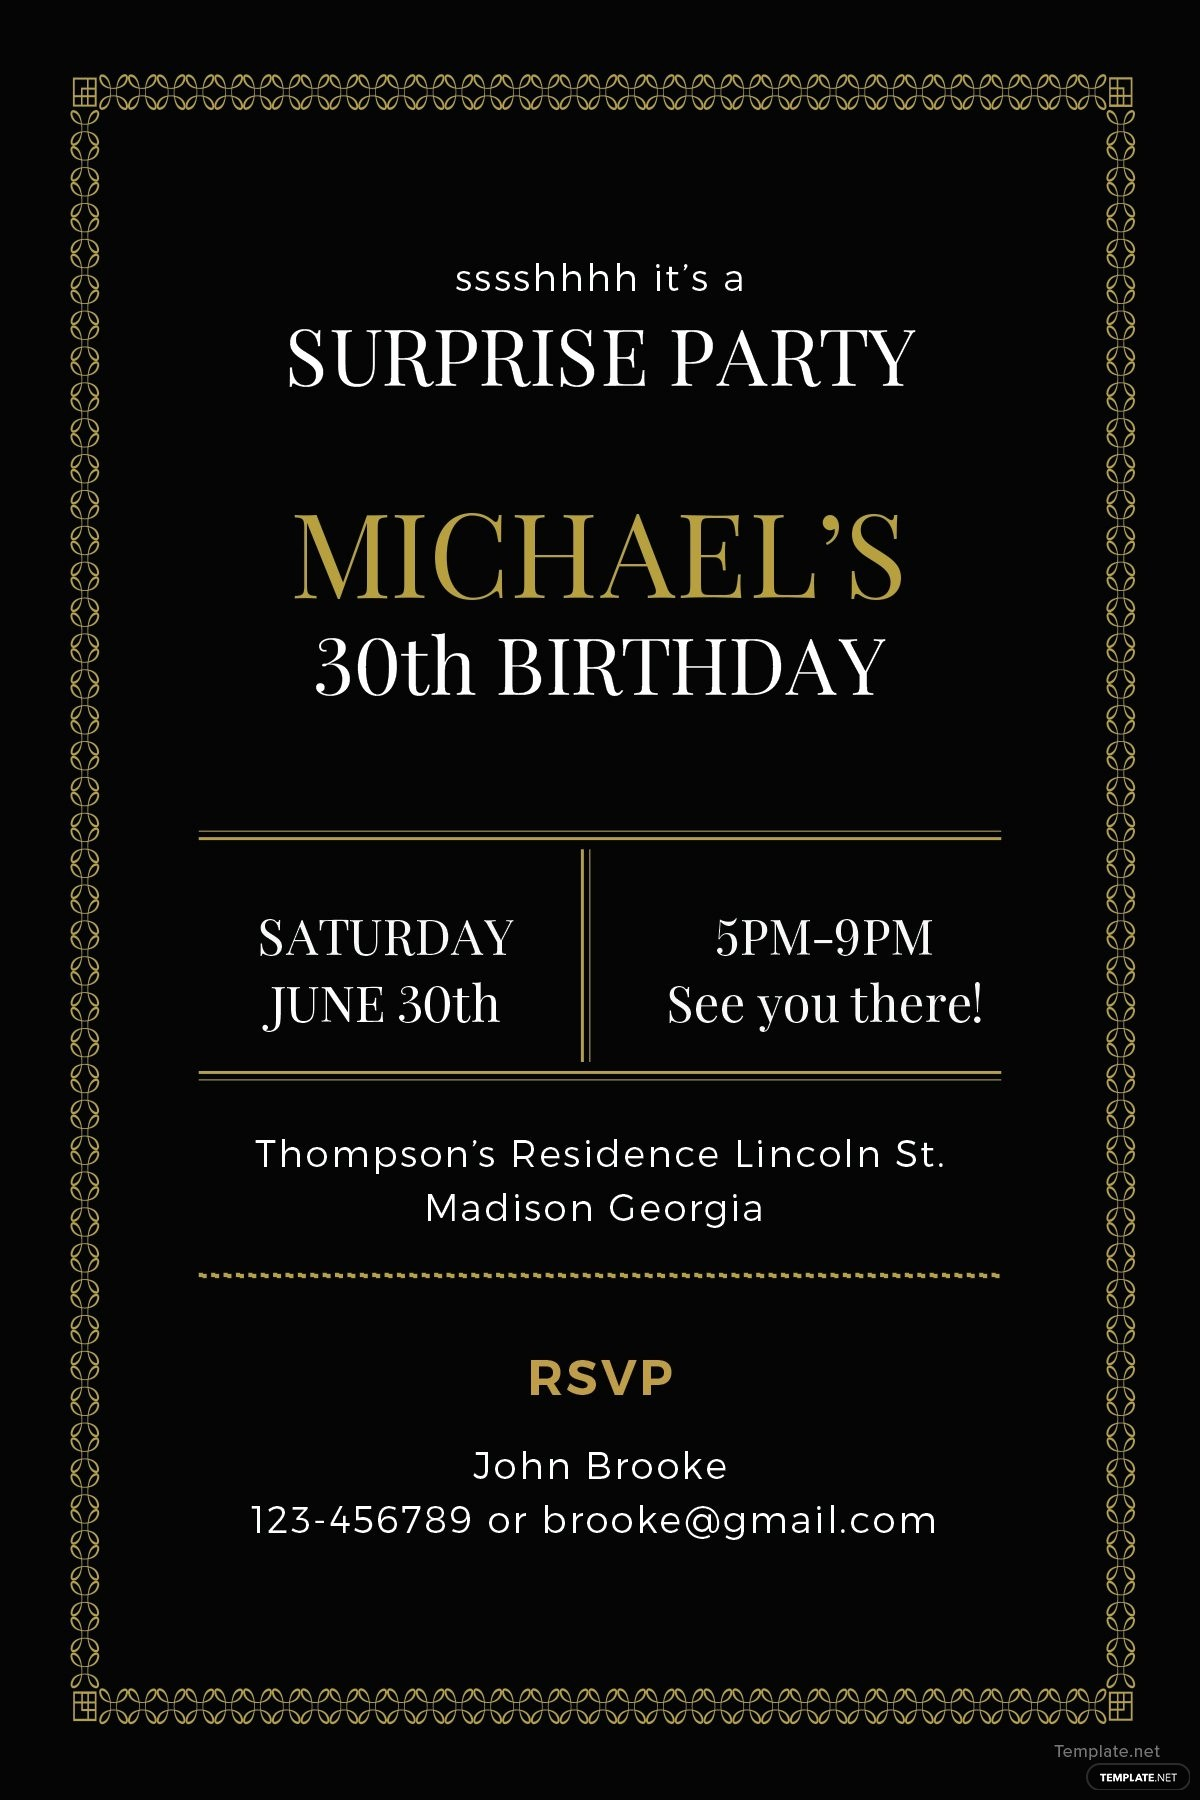 Surprise Birthday Party Invitation Template Awesome Free Surprise Party Invitation Template In Adobe